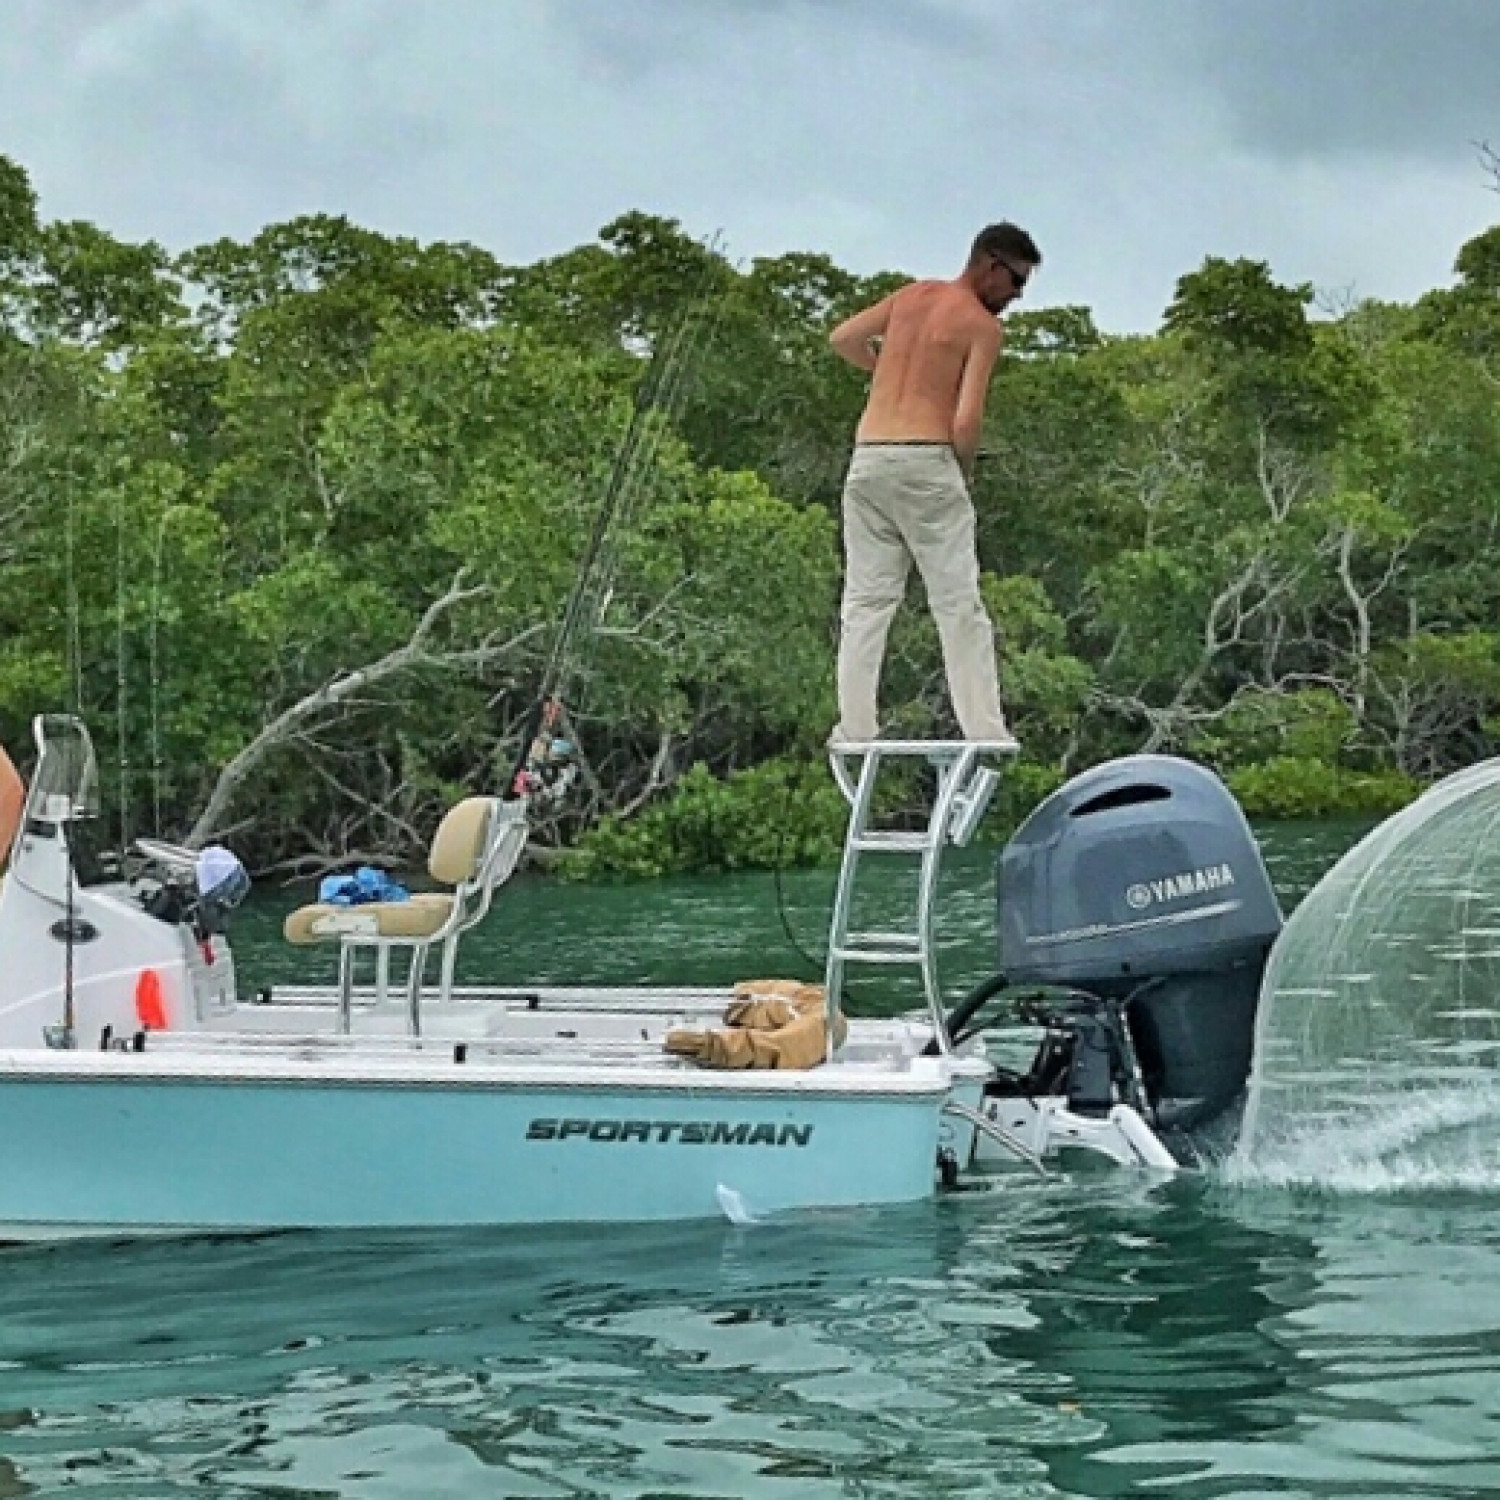 Title: #pancakes - On board their Sportsman Tournament 214 Bay Boat - Location: Key West, FL. Participating in the Photo Contest #SportsmanMay2018